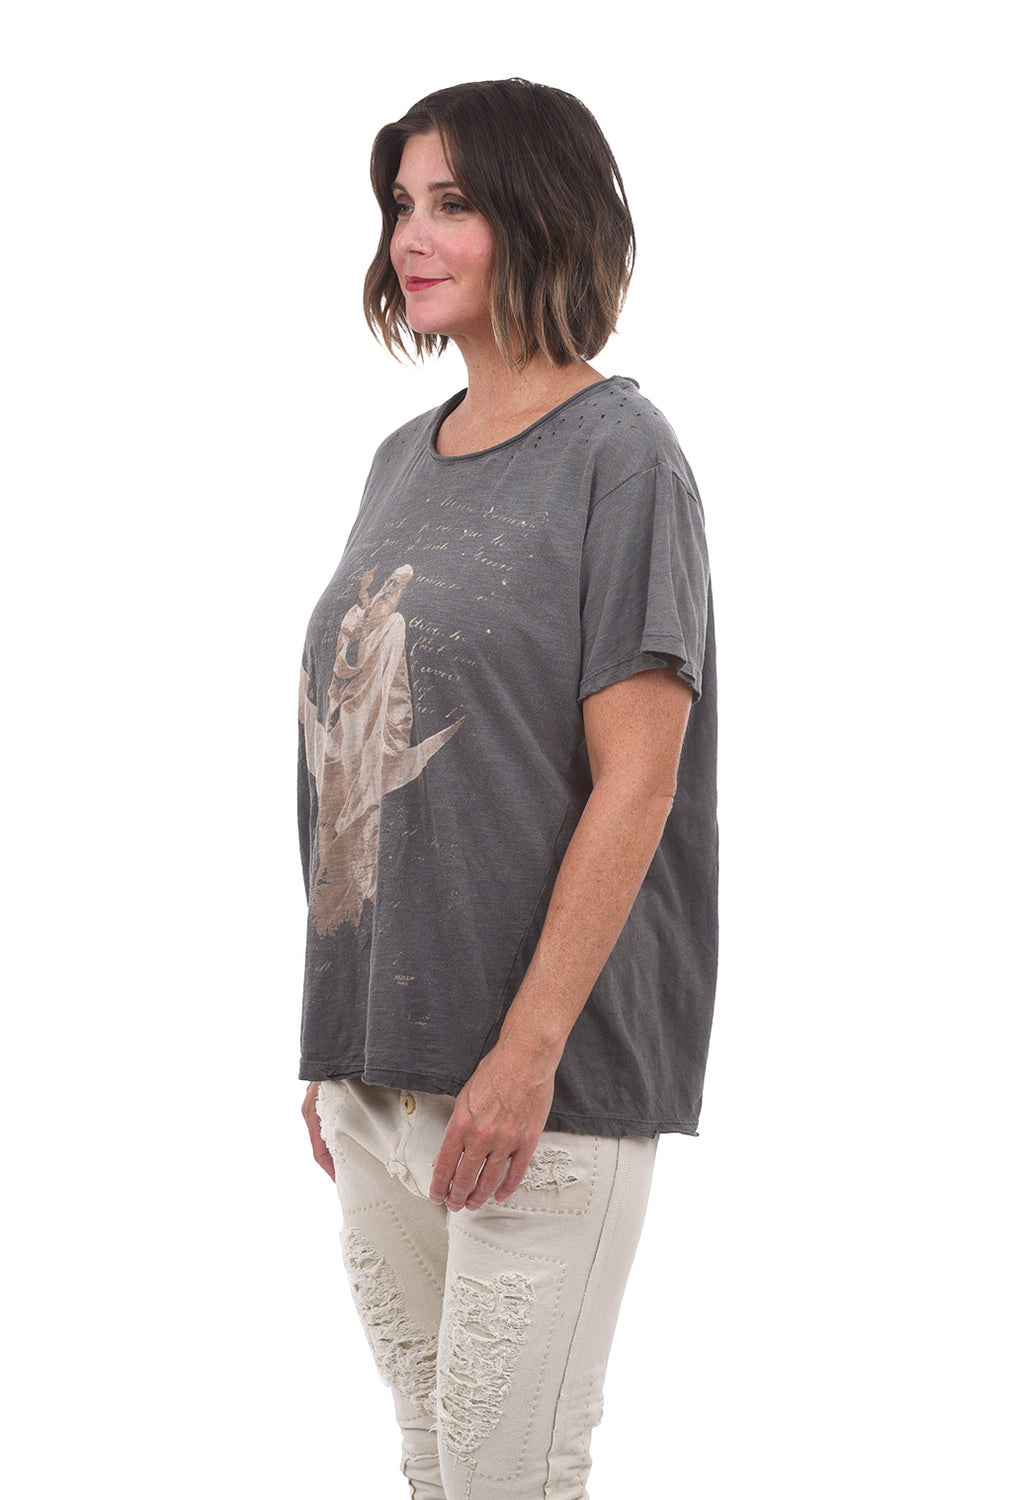 Magnolia Pearl New Boyfriend Tee, Keeper of the Moon One Size Gray